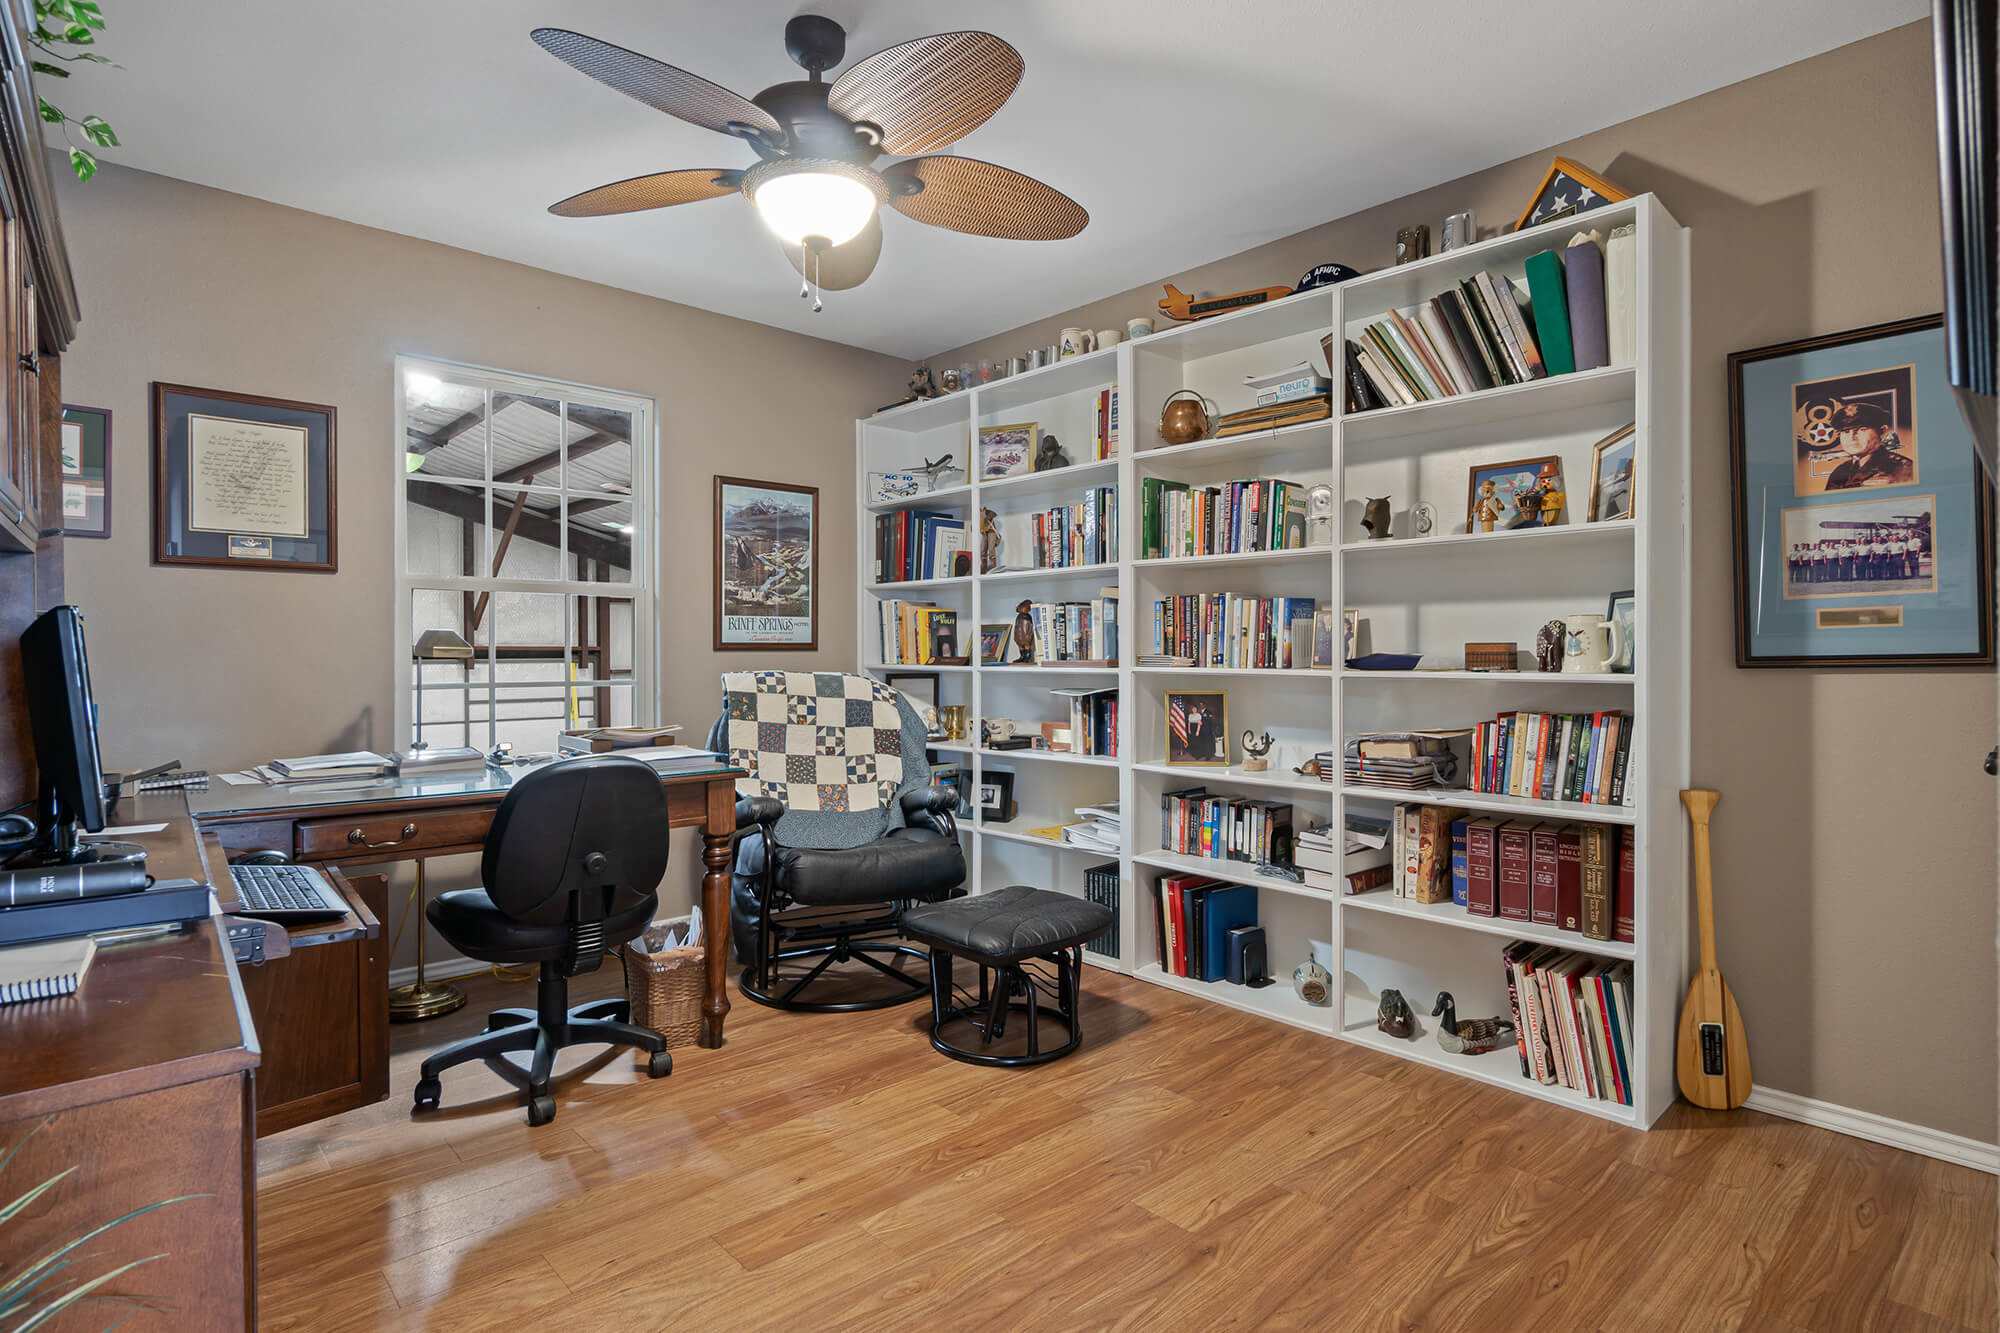 Tailwind hangar home study and office